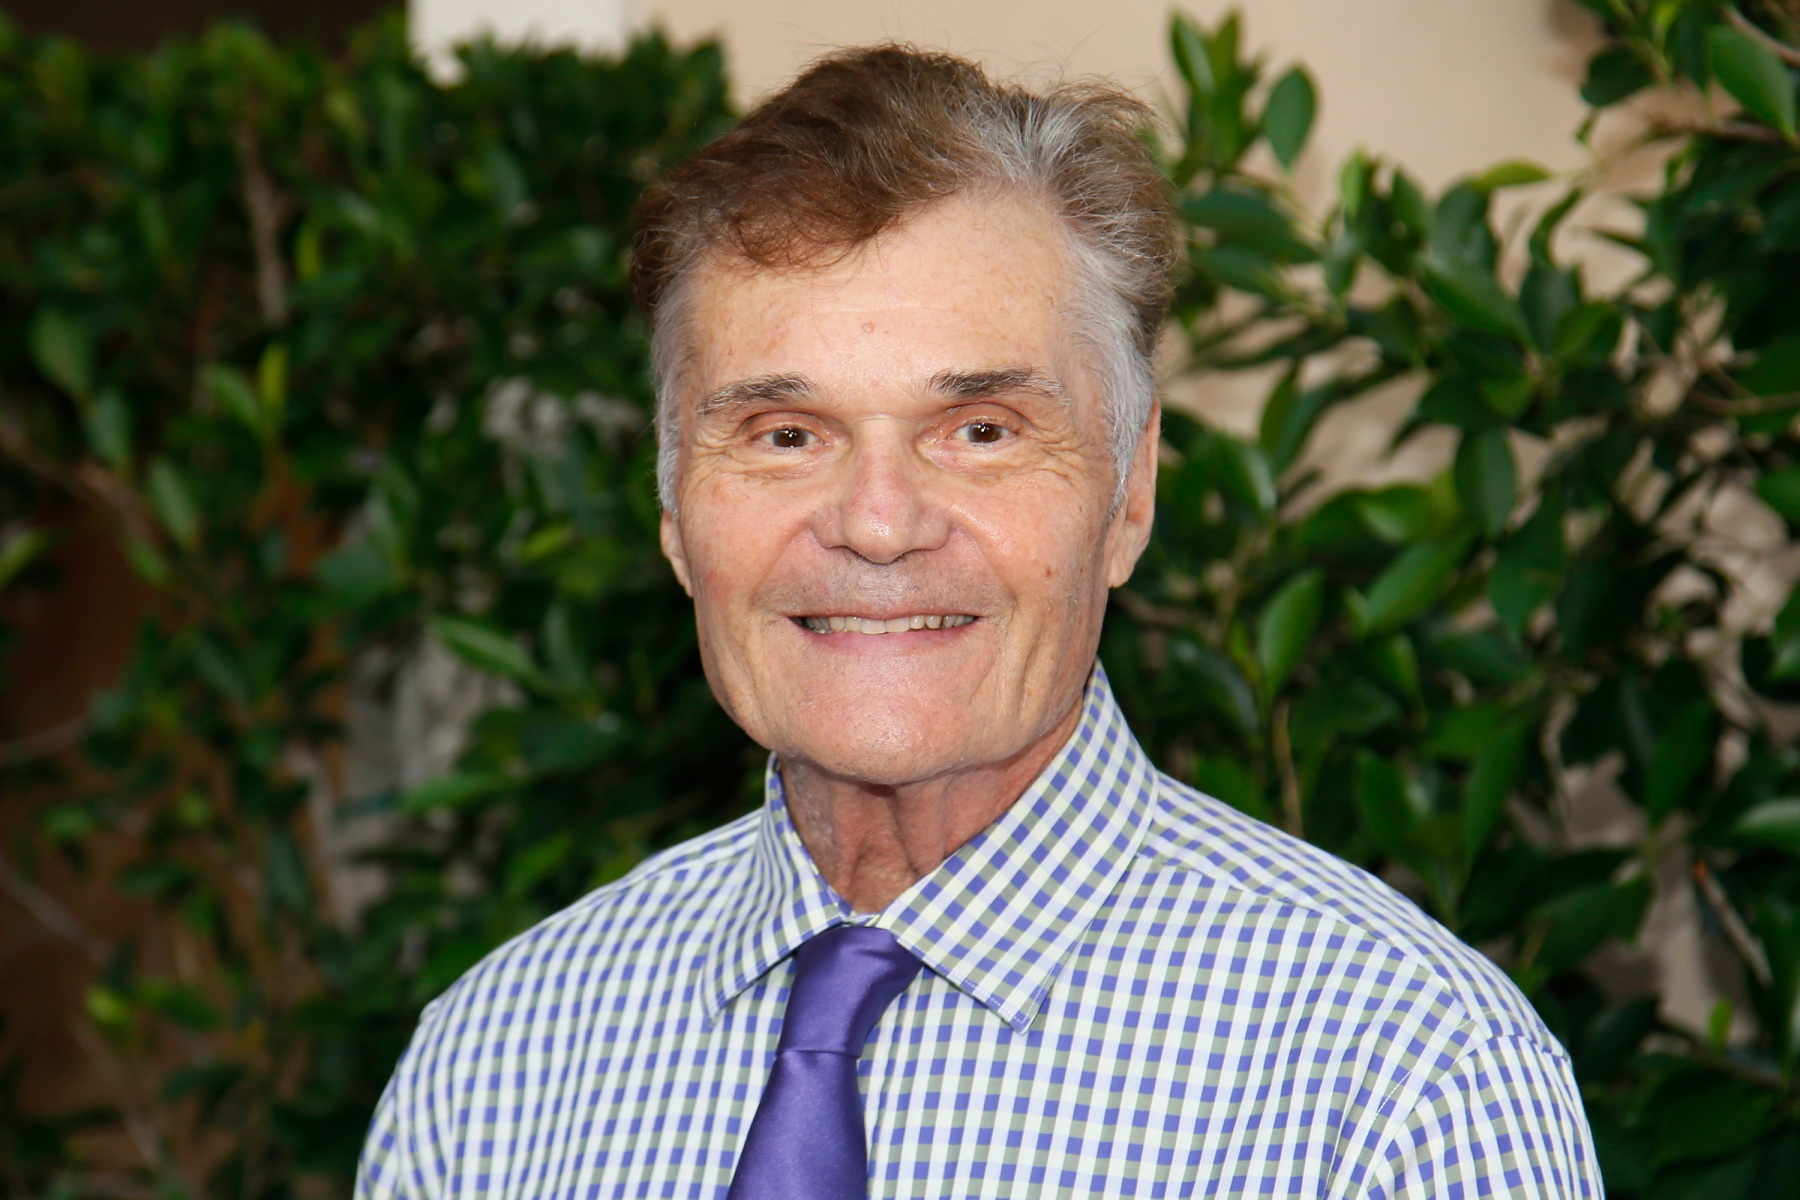 Fred Willard seen at the Television Academy's 67th Emmy Daytime Peer Group Celebration at the Montage Beverly Hills on in Beverly Hills, Calif2015 Daytime Programming Peer Group Celebration presented by the Television Academy - Arrivals, Beverly Hills, USA - 26 Aug 2015